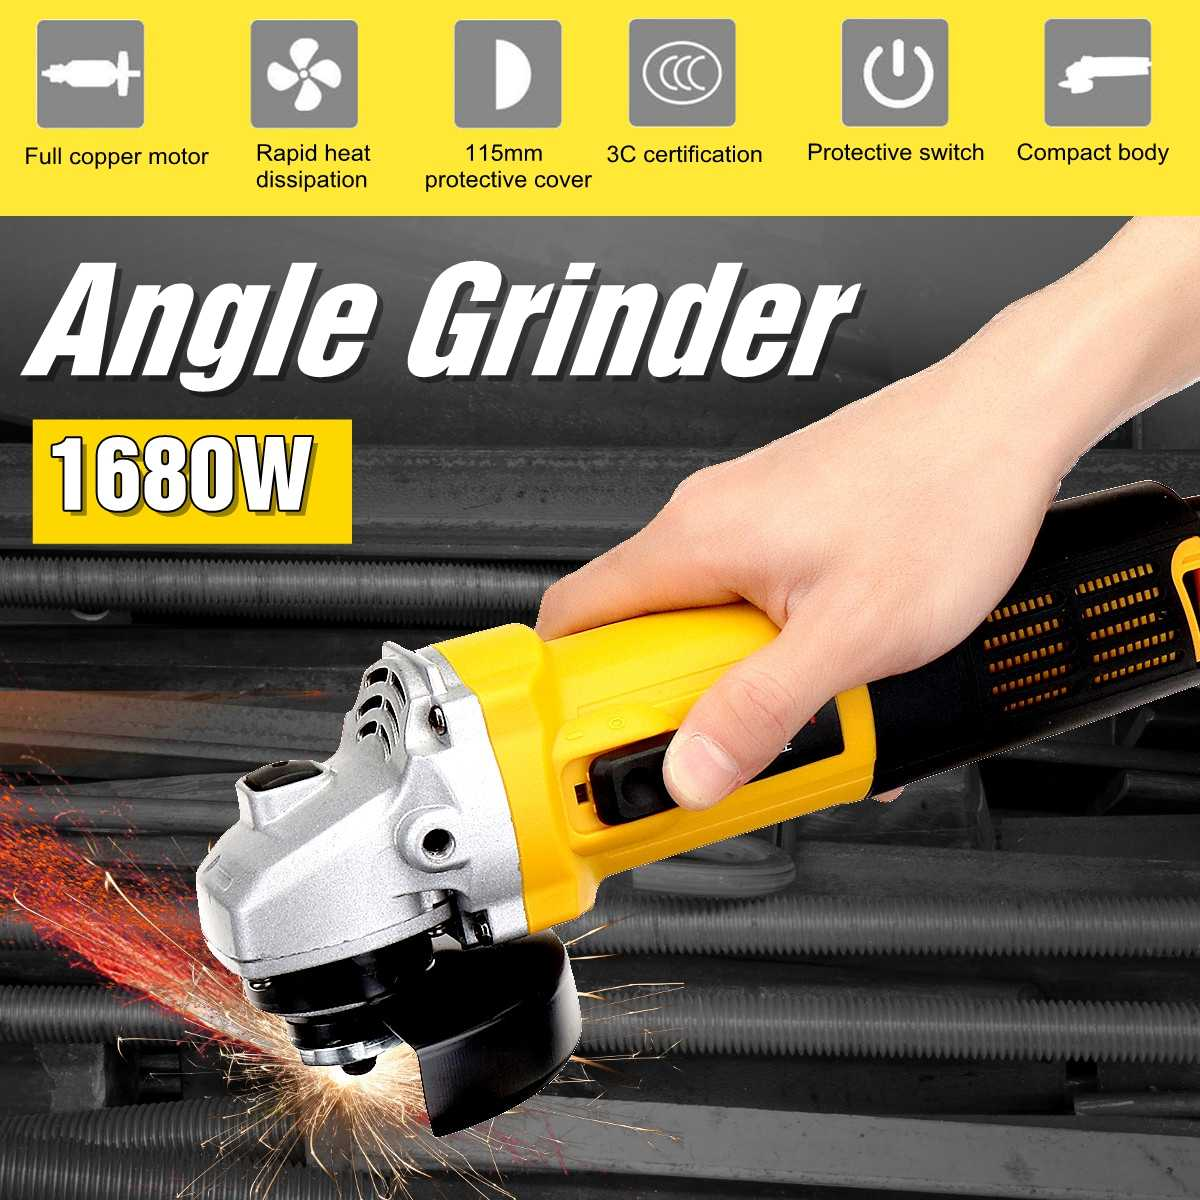 220V/50Hz 1680W 11000r/min Angle Grinder Electric Angle Grinding Cutting Power Tools 100mm Diameter220V/50Hz 1680W 11000r/min Angle Grinder Electric Angle Grinding Cutting Power Tools 100mm Diameter